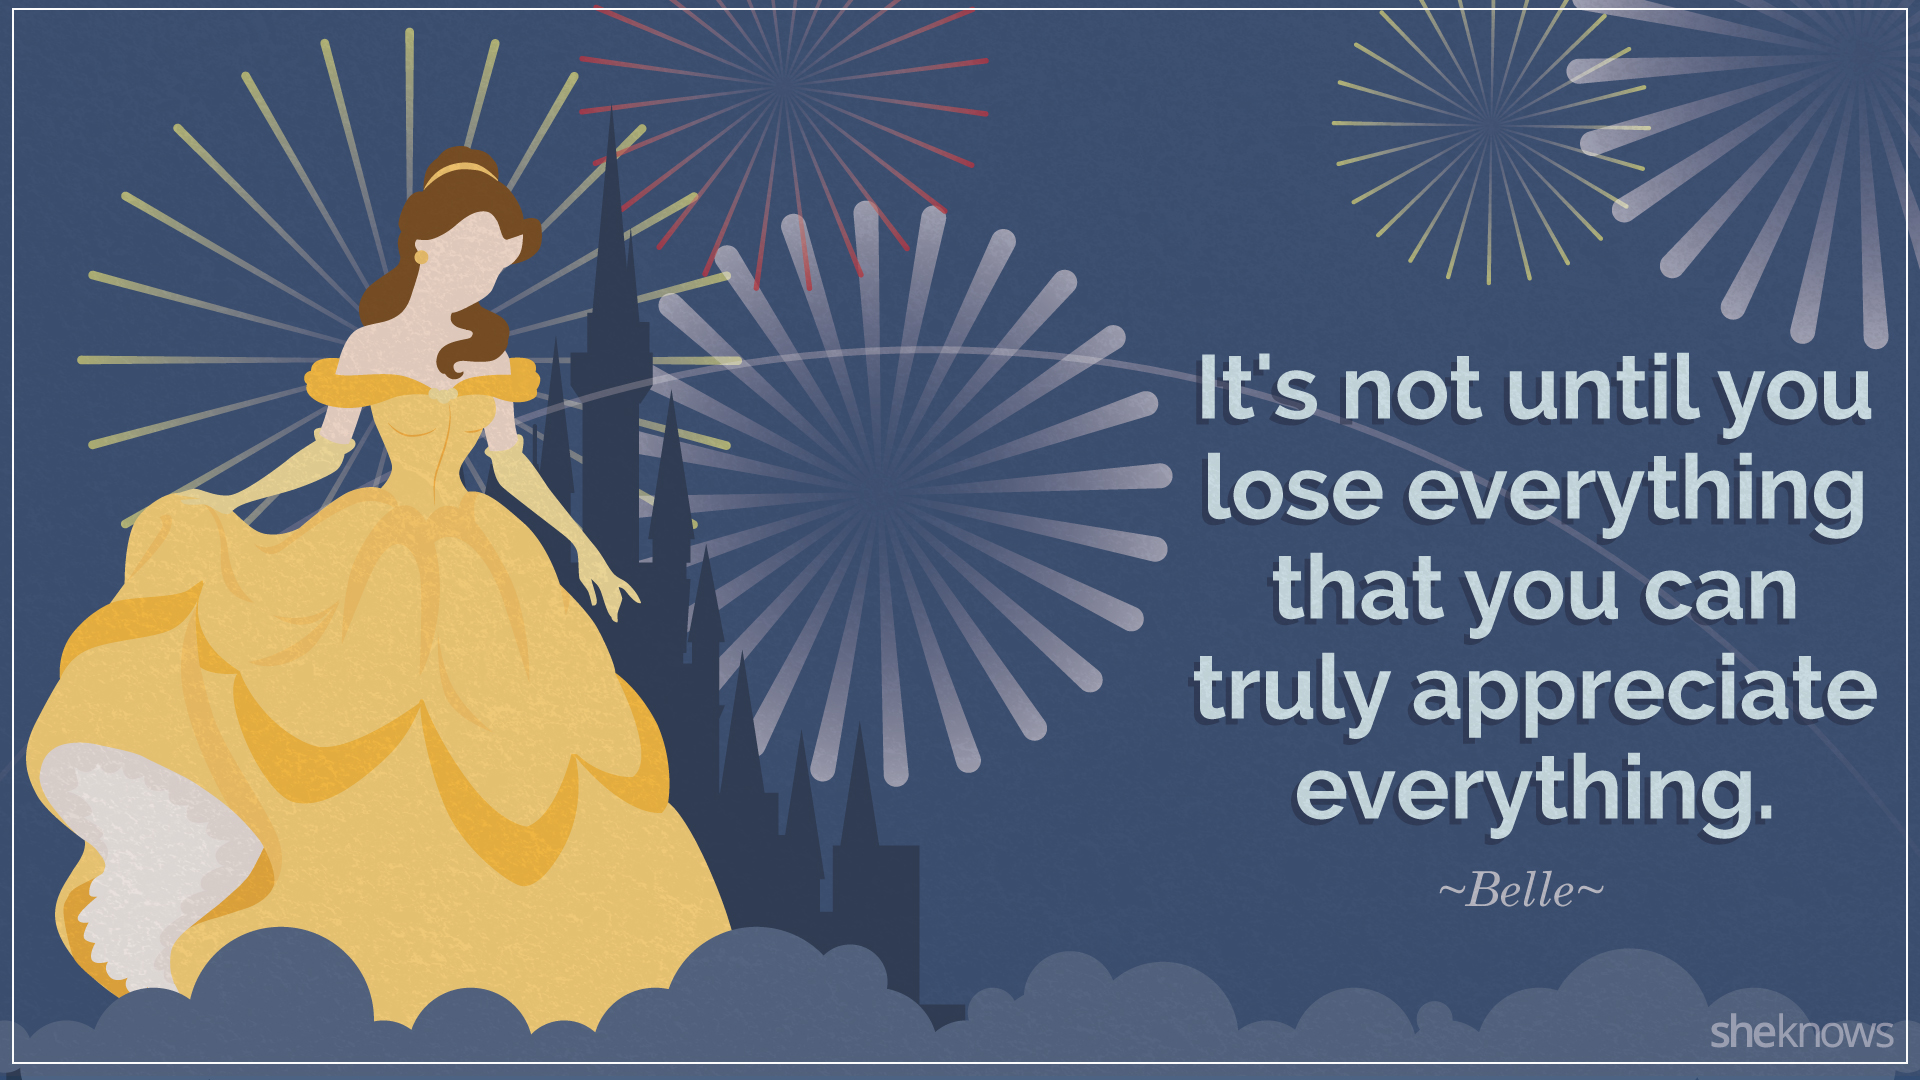 belle inspirational quote